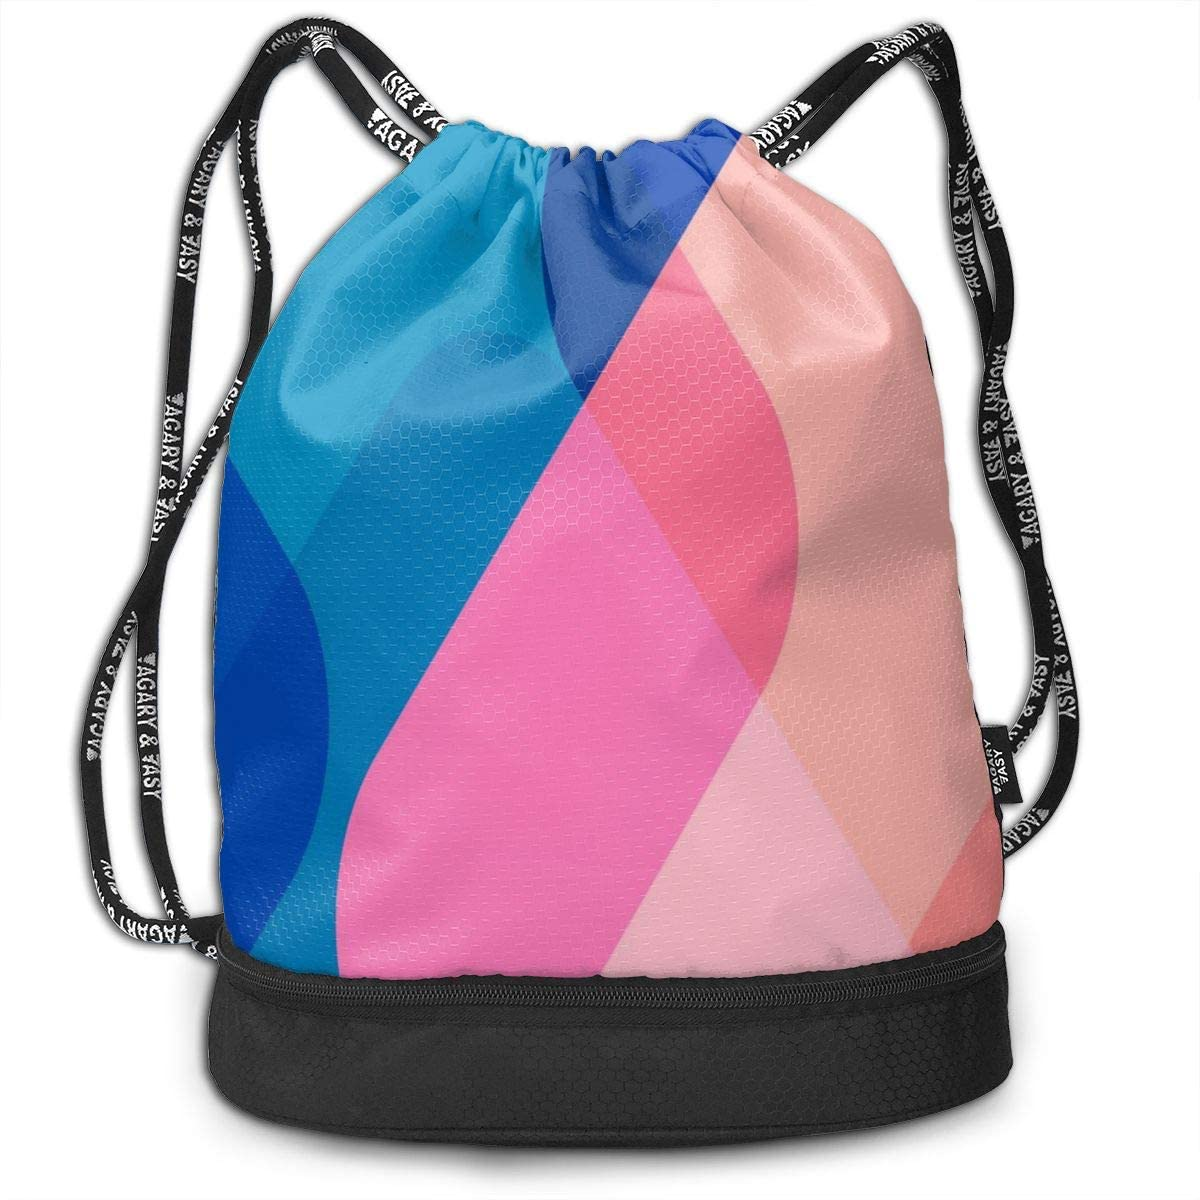 Drawstring Backpack Bag Sport Gym Sackpack With Colorful Abstract Design (39) Printing